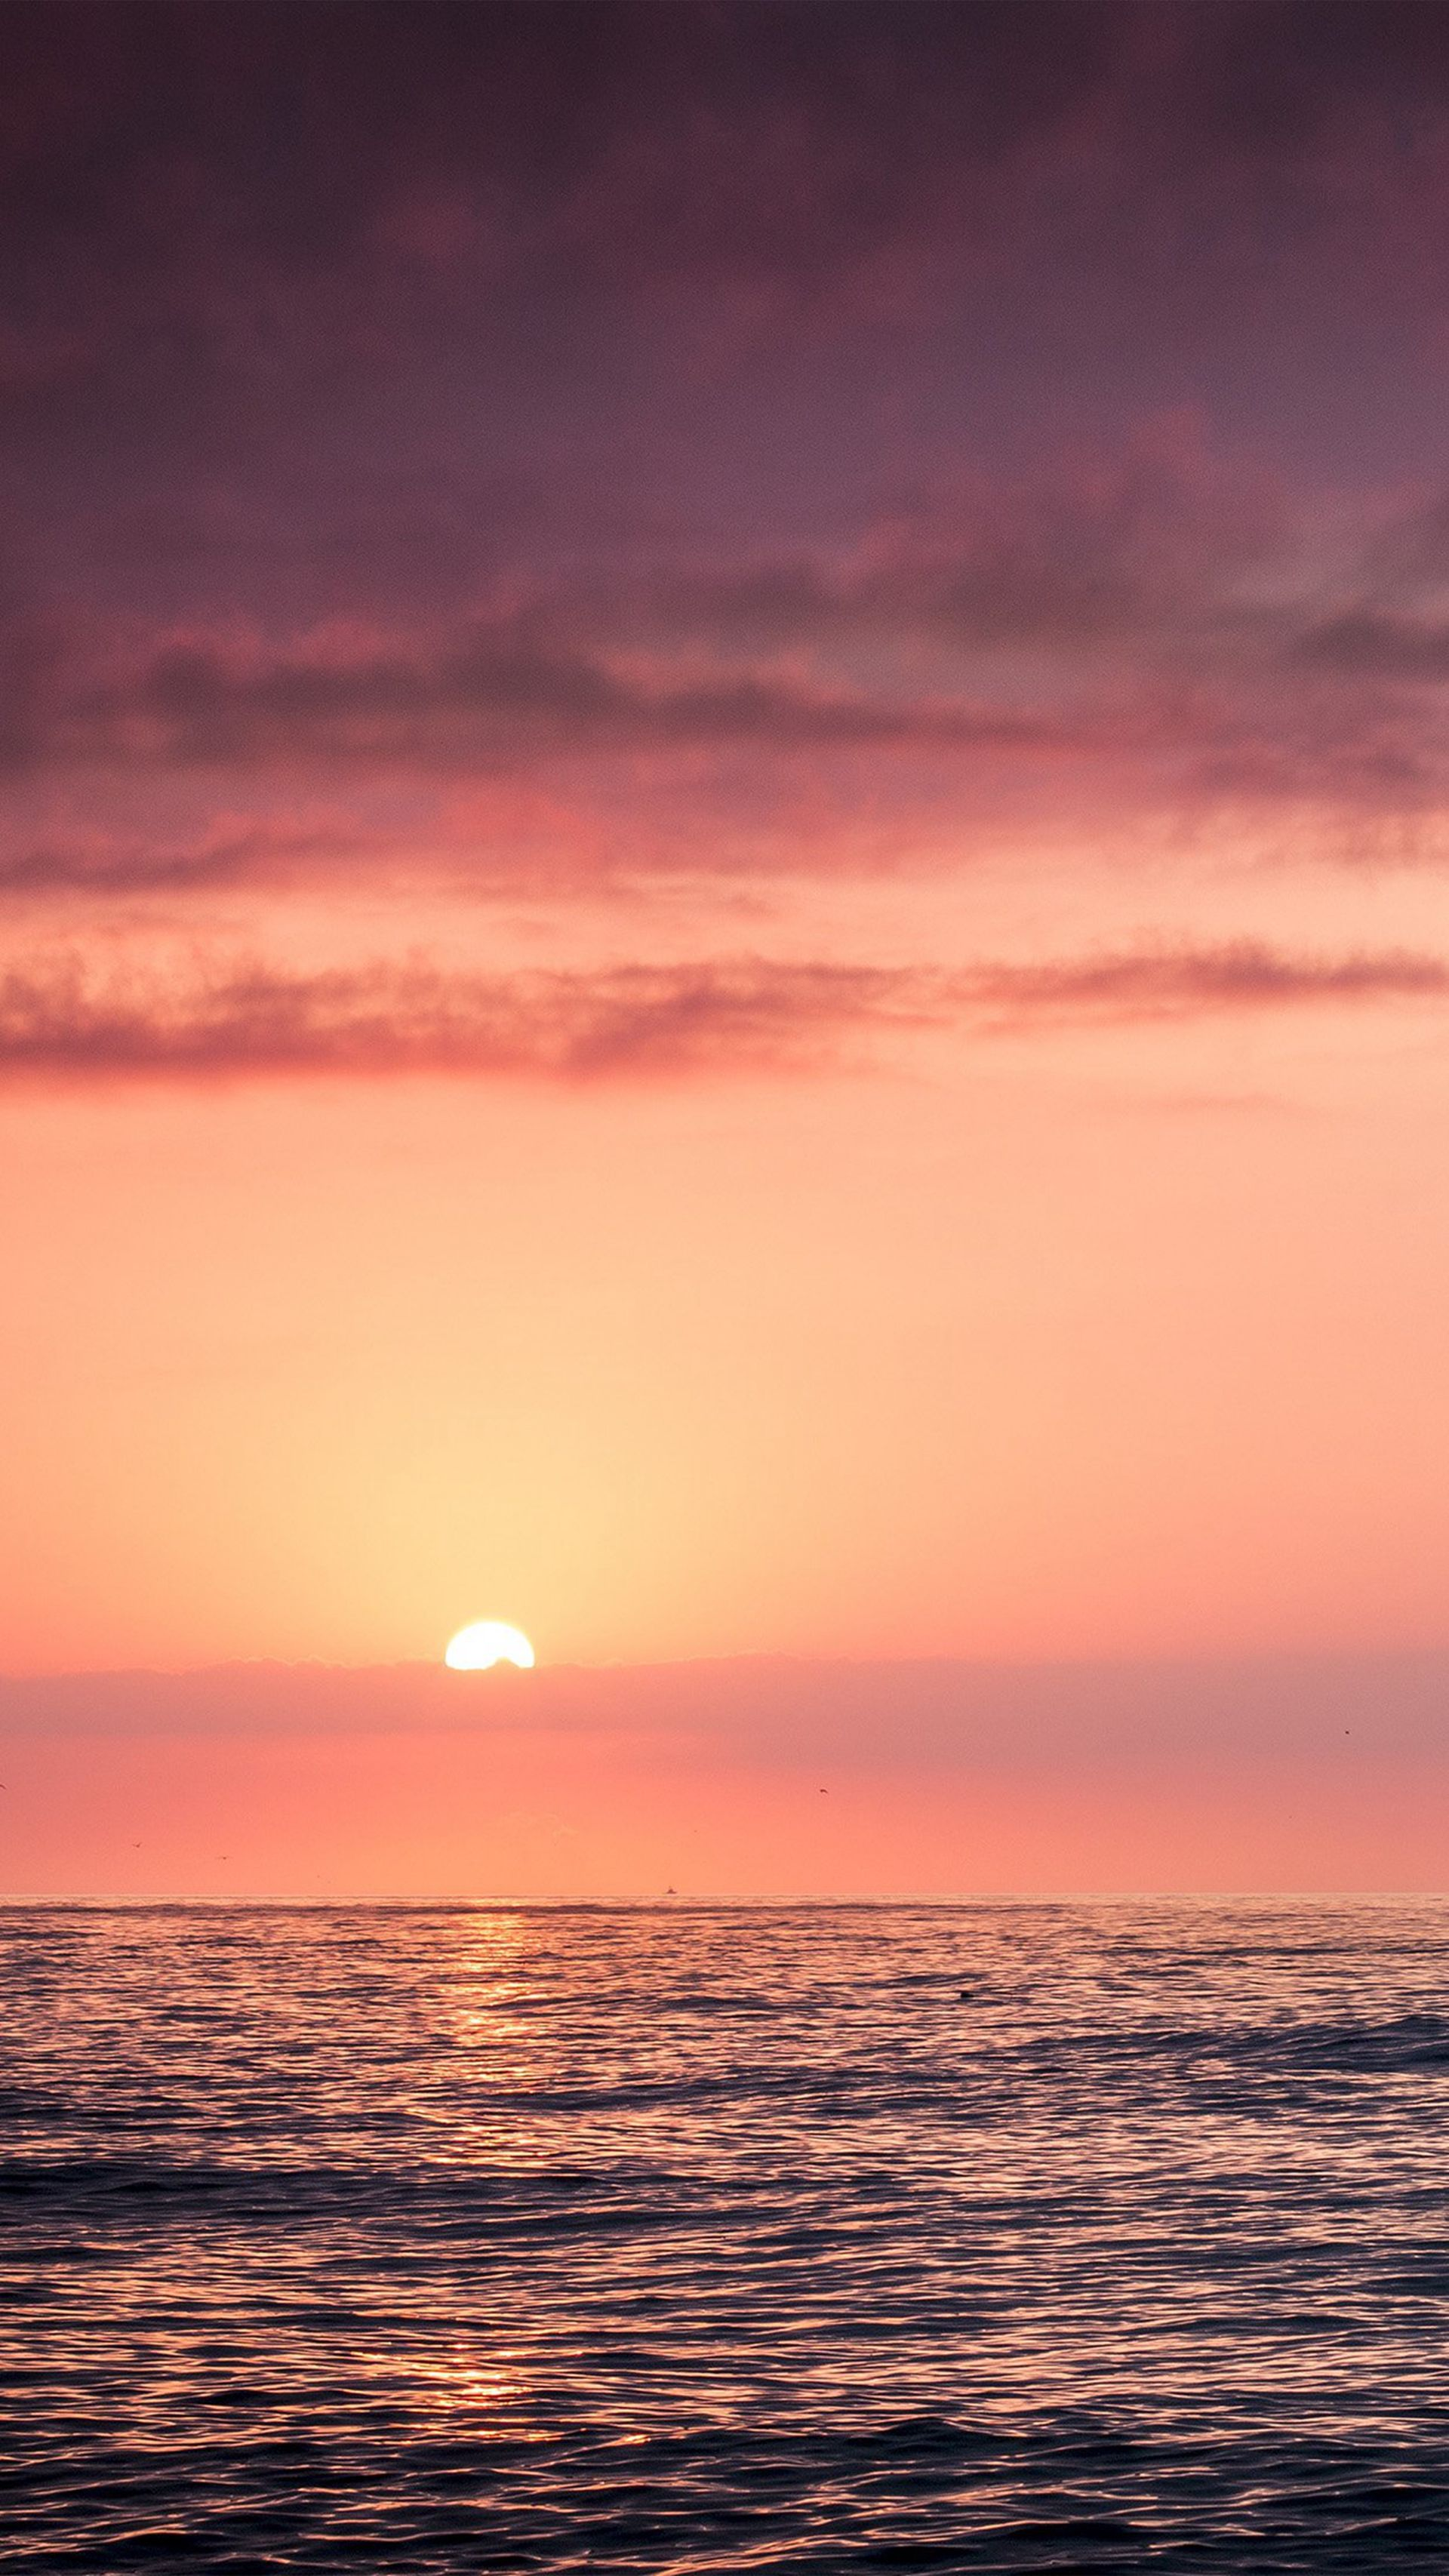 Ocean Sunset Preppy wallpaper, 7 plus wallpaper